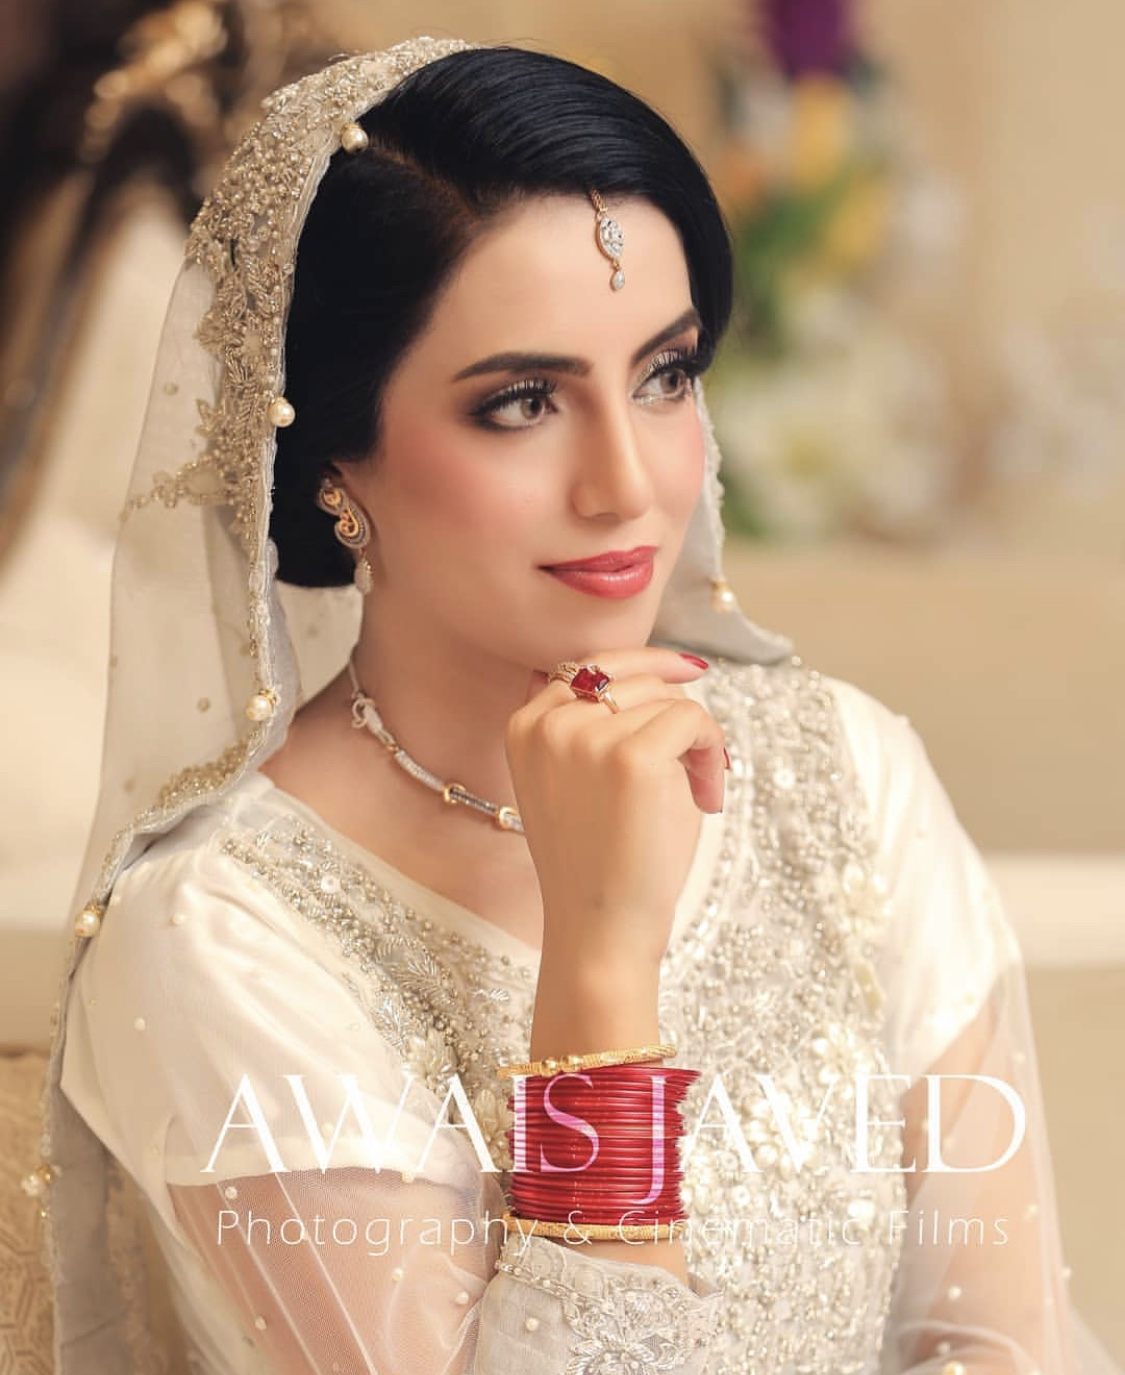 saniya inmad wasim wedding